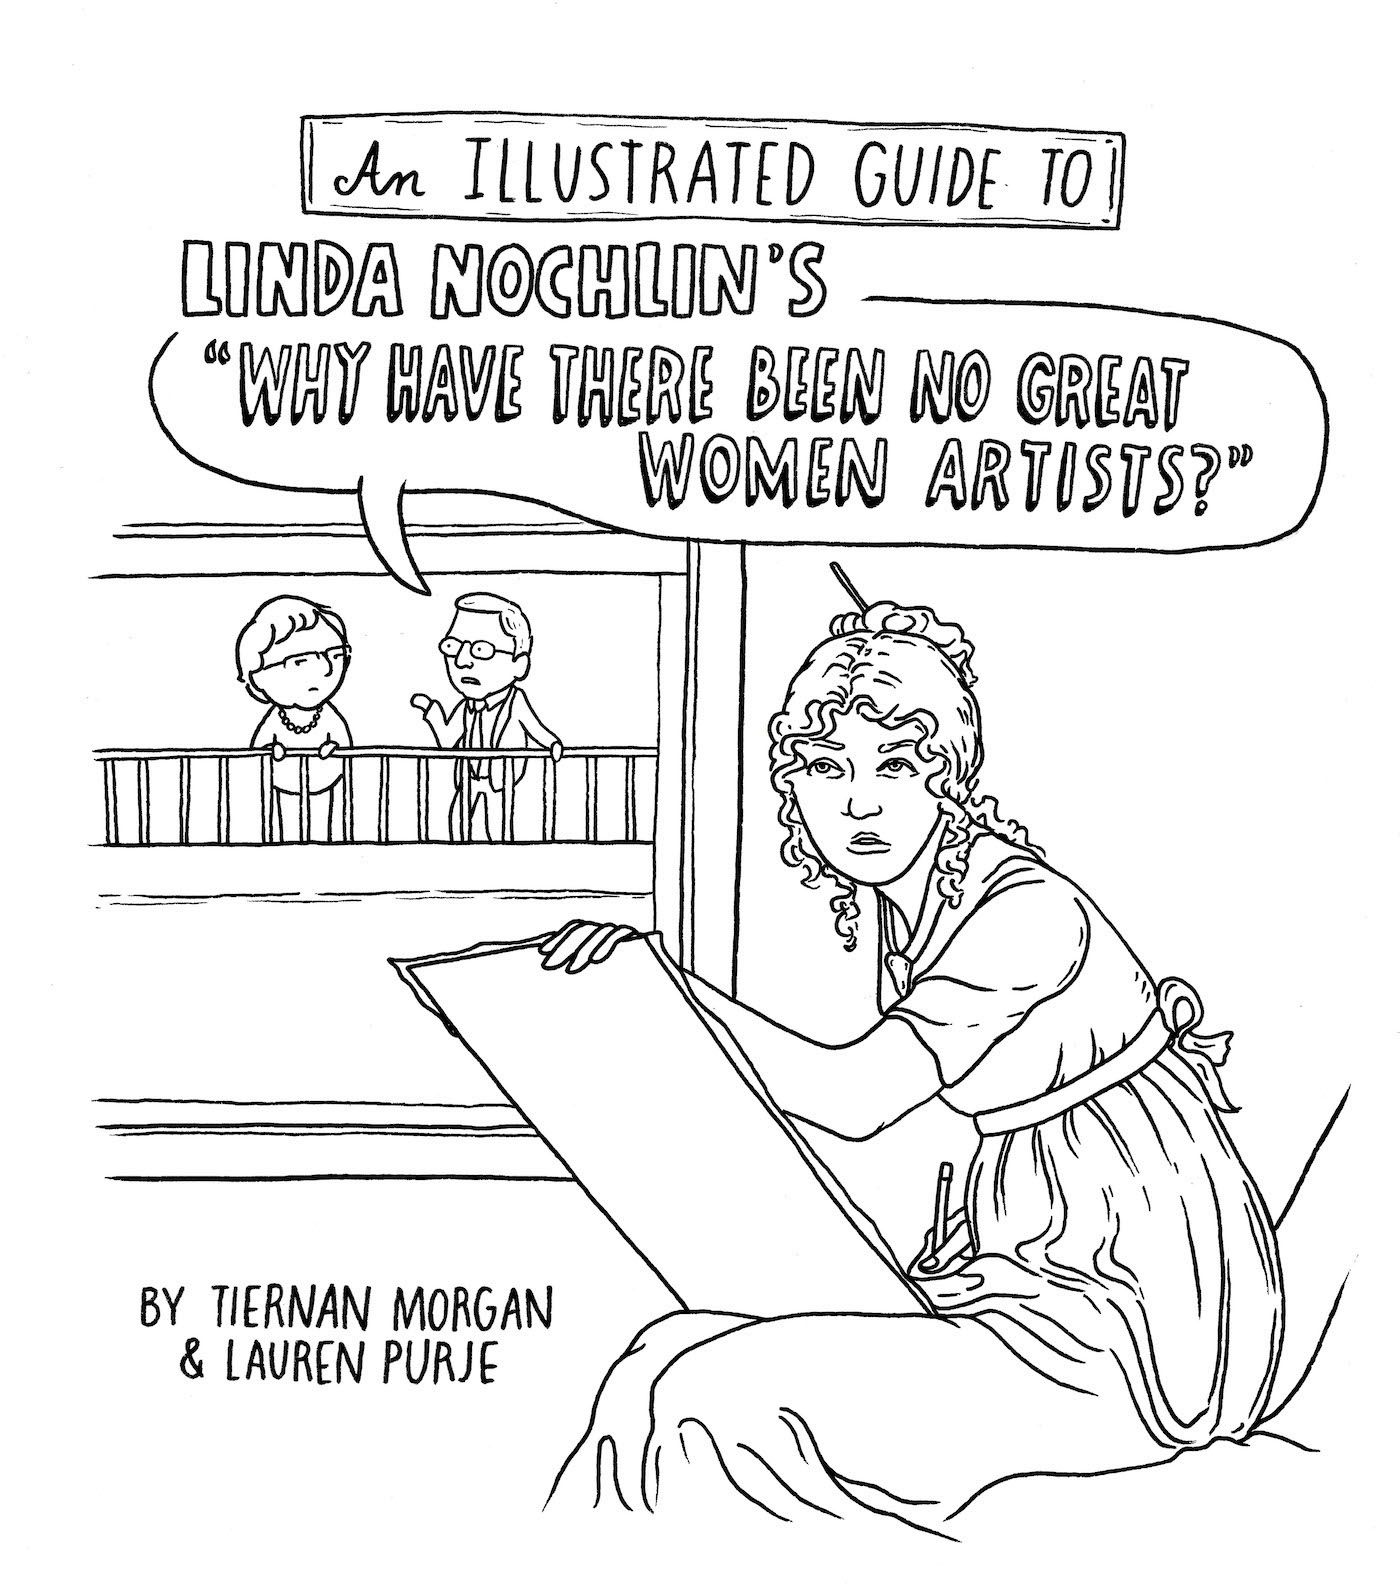 An Illustrated Guide To Linda Nochlin S Why Have There Been No Great Women Artist Female Art History Major Feminist Michelangelo Essay